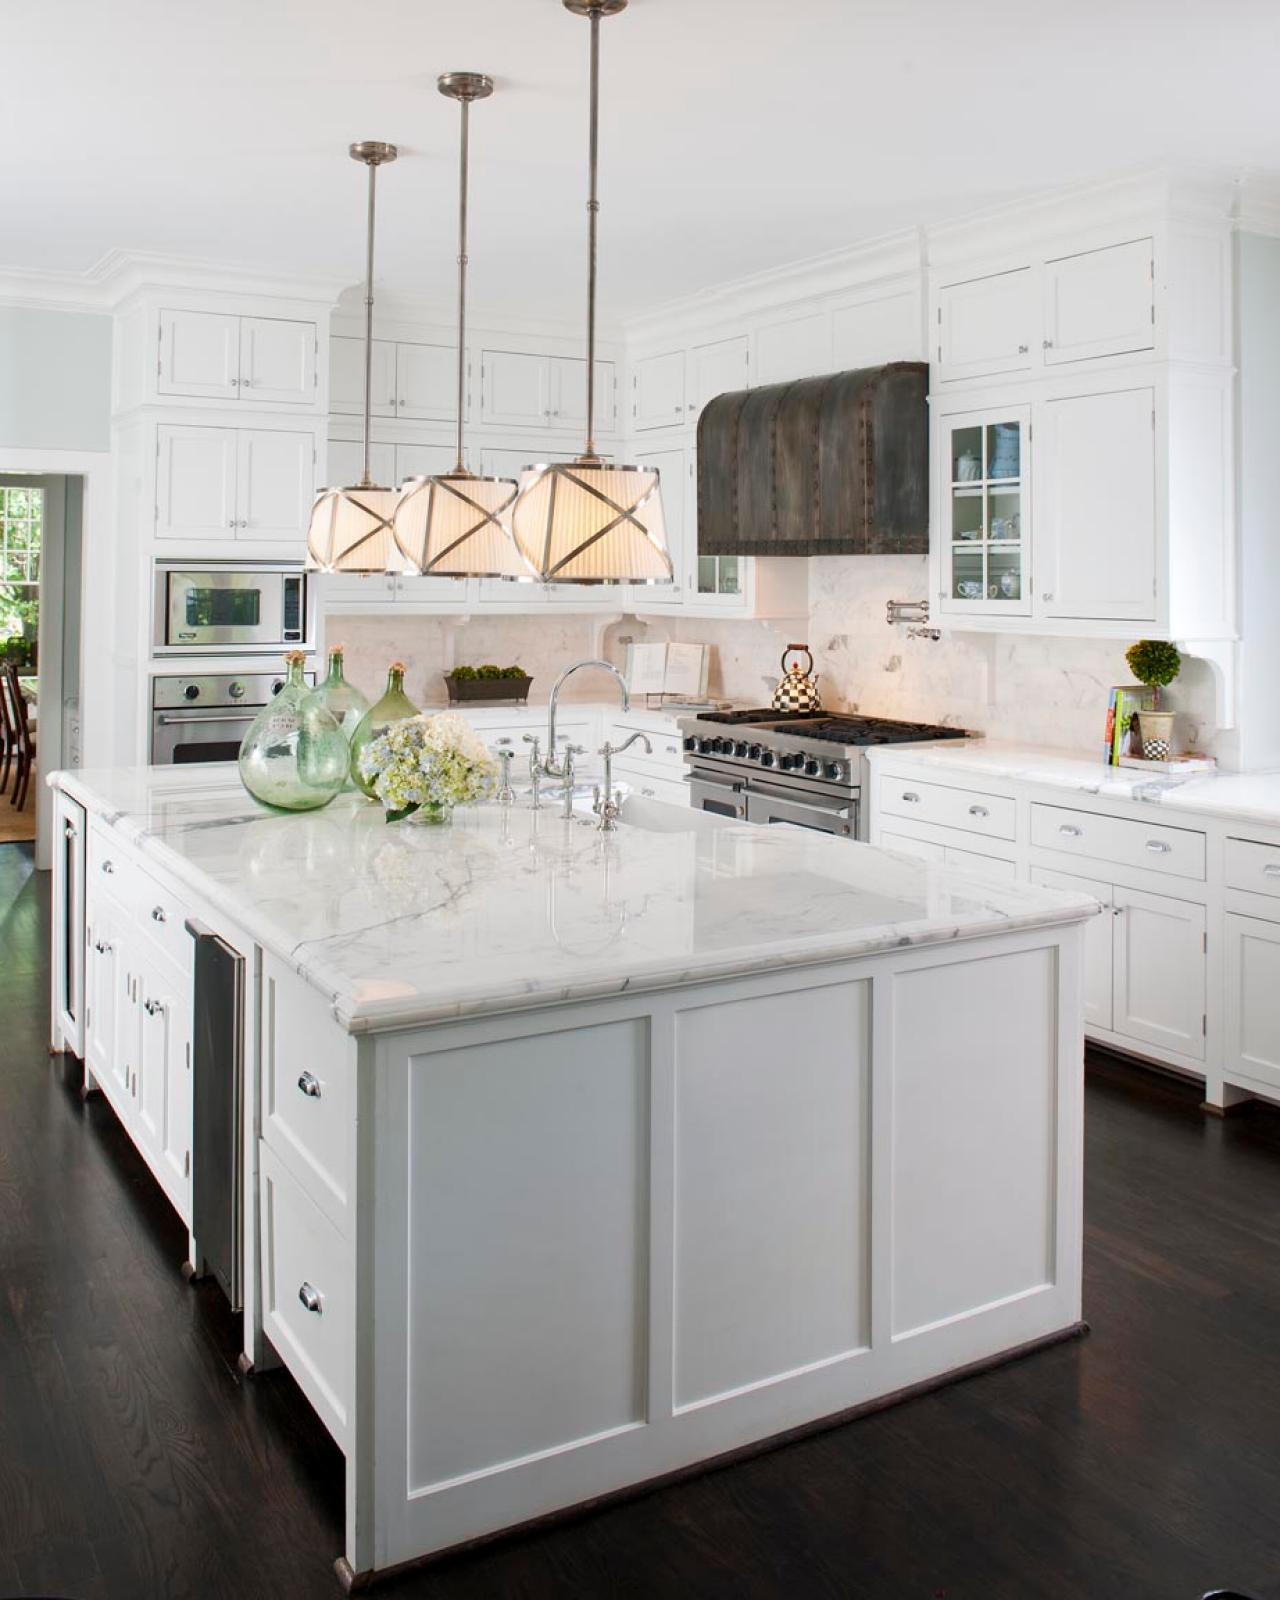 Dark Counters Dark Floors White Cabinets: Bright Transitional Kitchen With White Marble Countertops